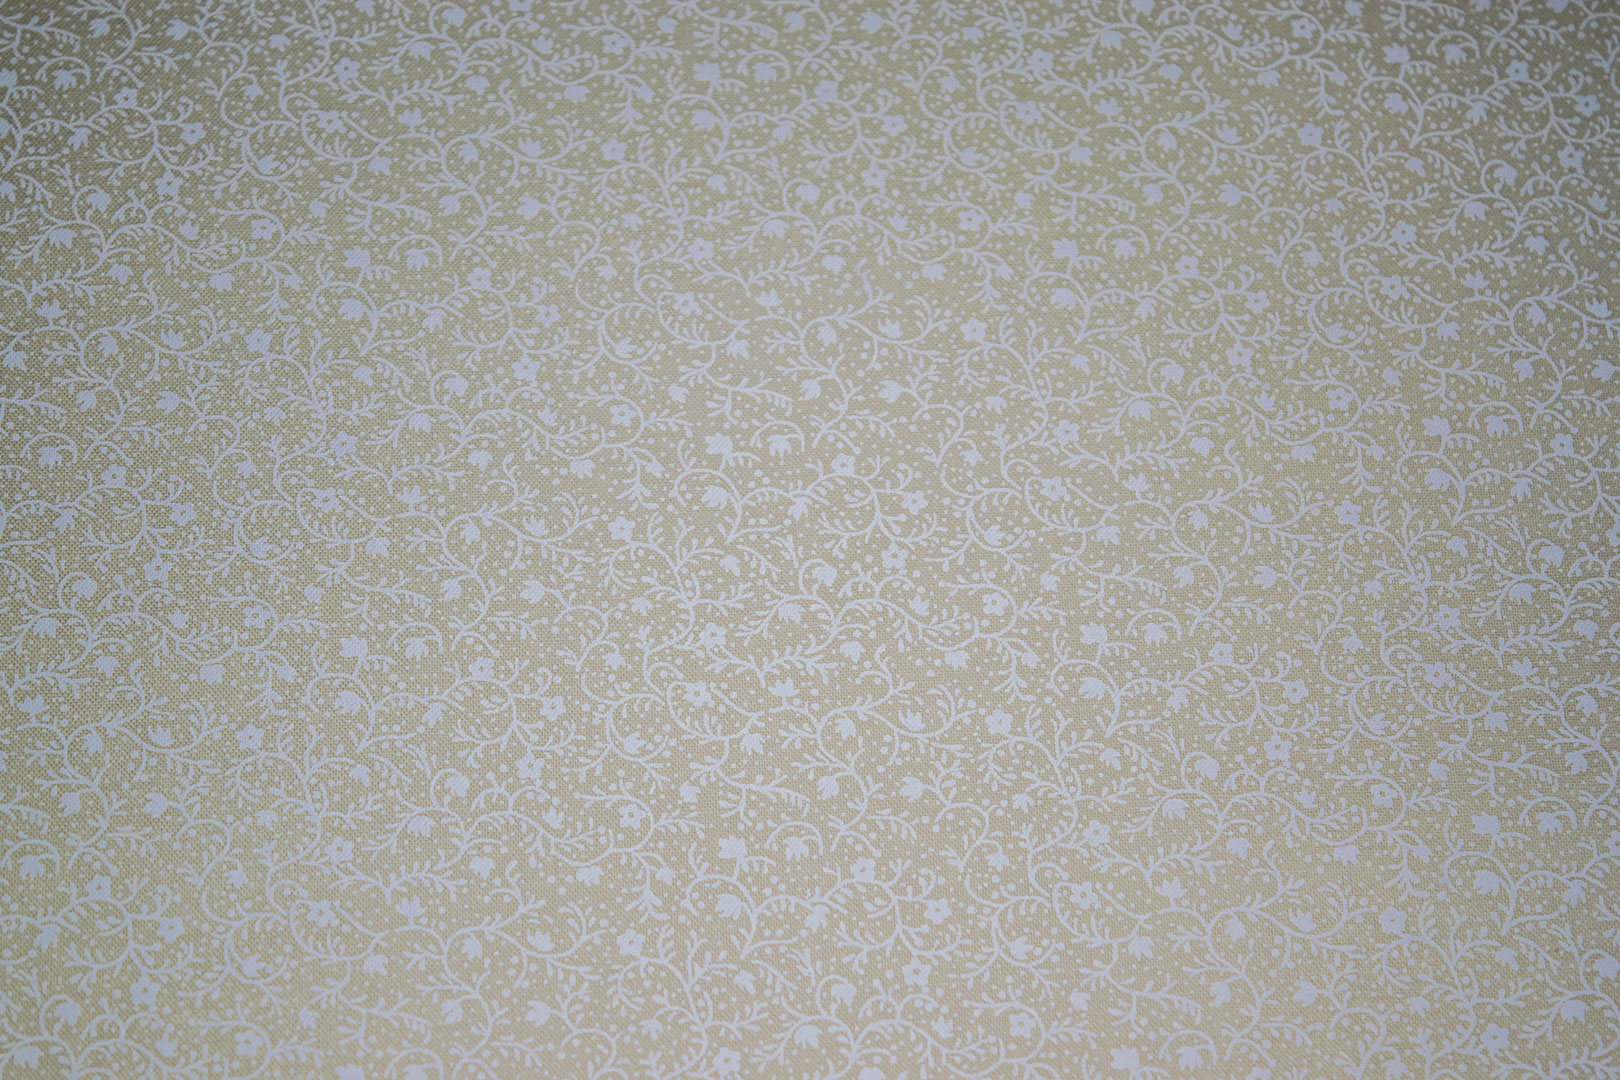 """8_20065_wt   44/45"""" 68/68, 100% Carded Cotton"""